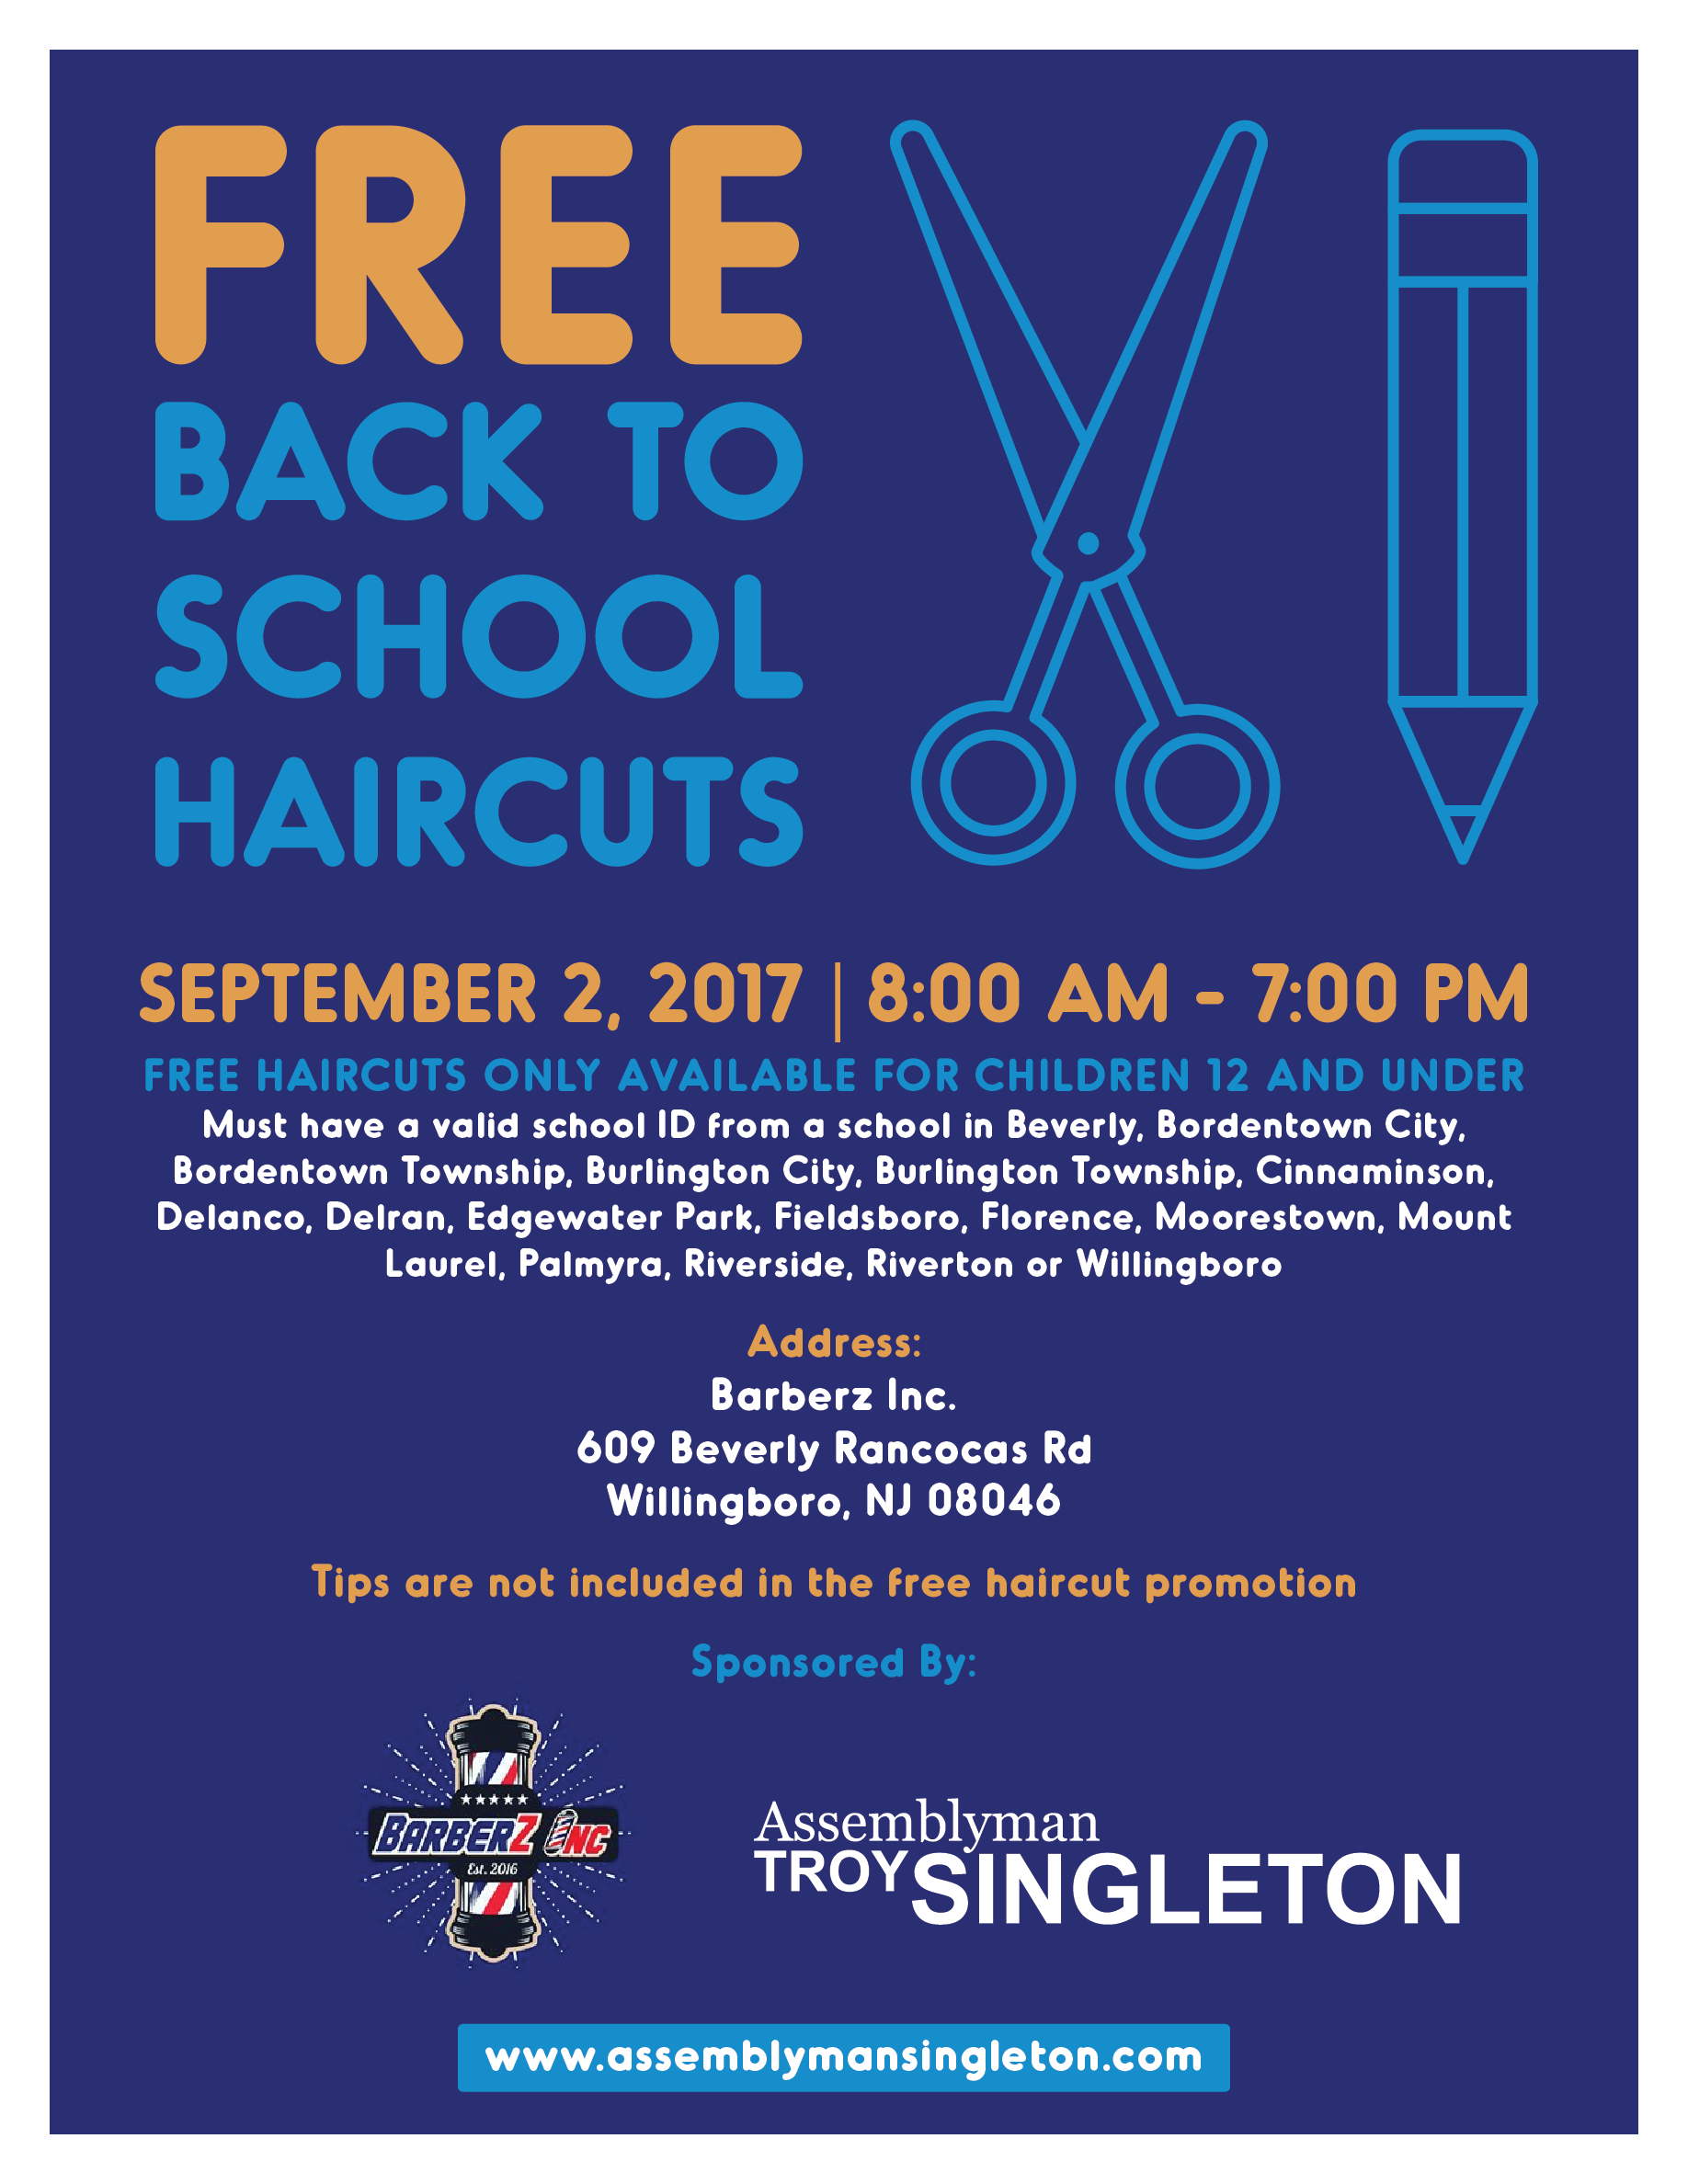 Singleton---Free-Hair-Cuts-Flyer-2017-v2-.png